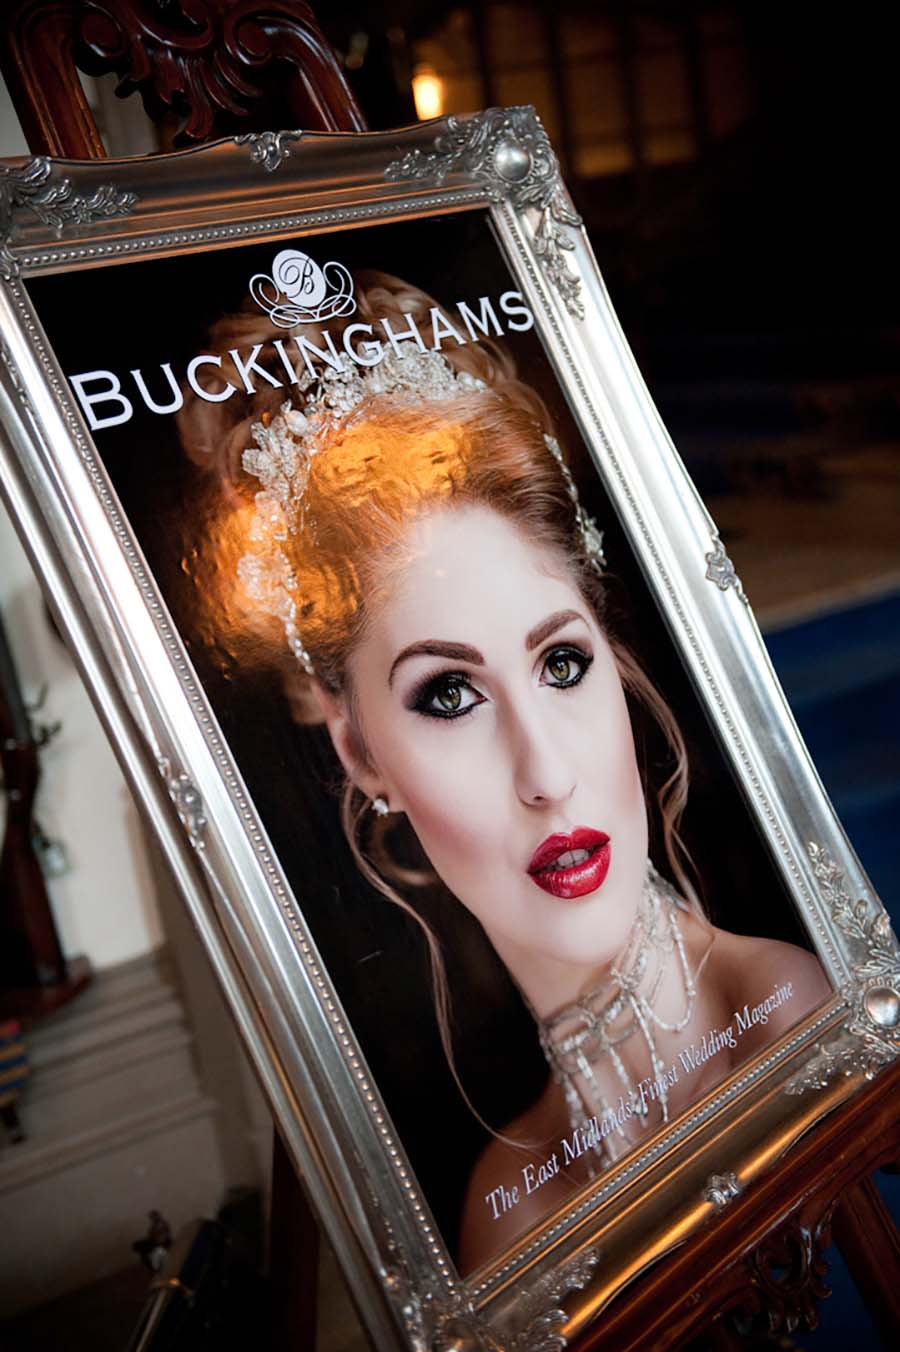 Buckinghams-at-belvoir-castle-wedding-fair-rachael-connerton-photography-12